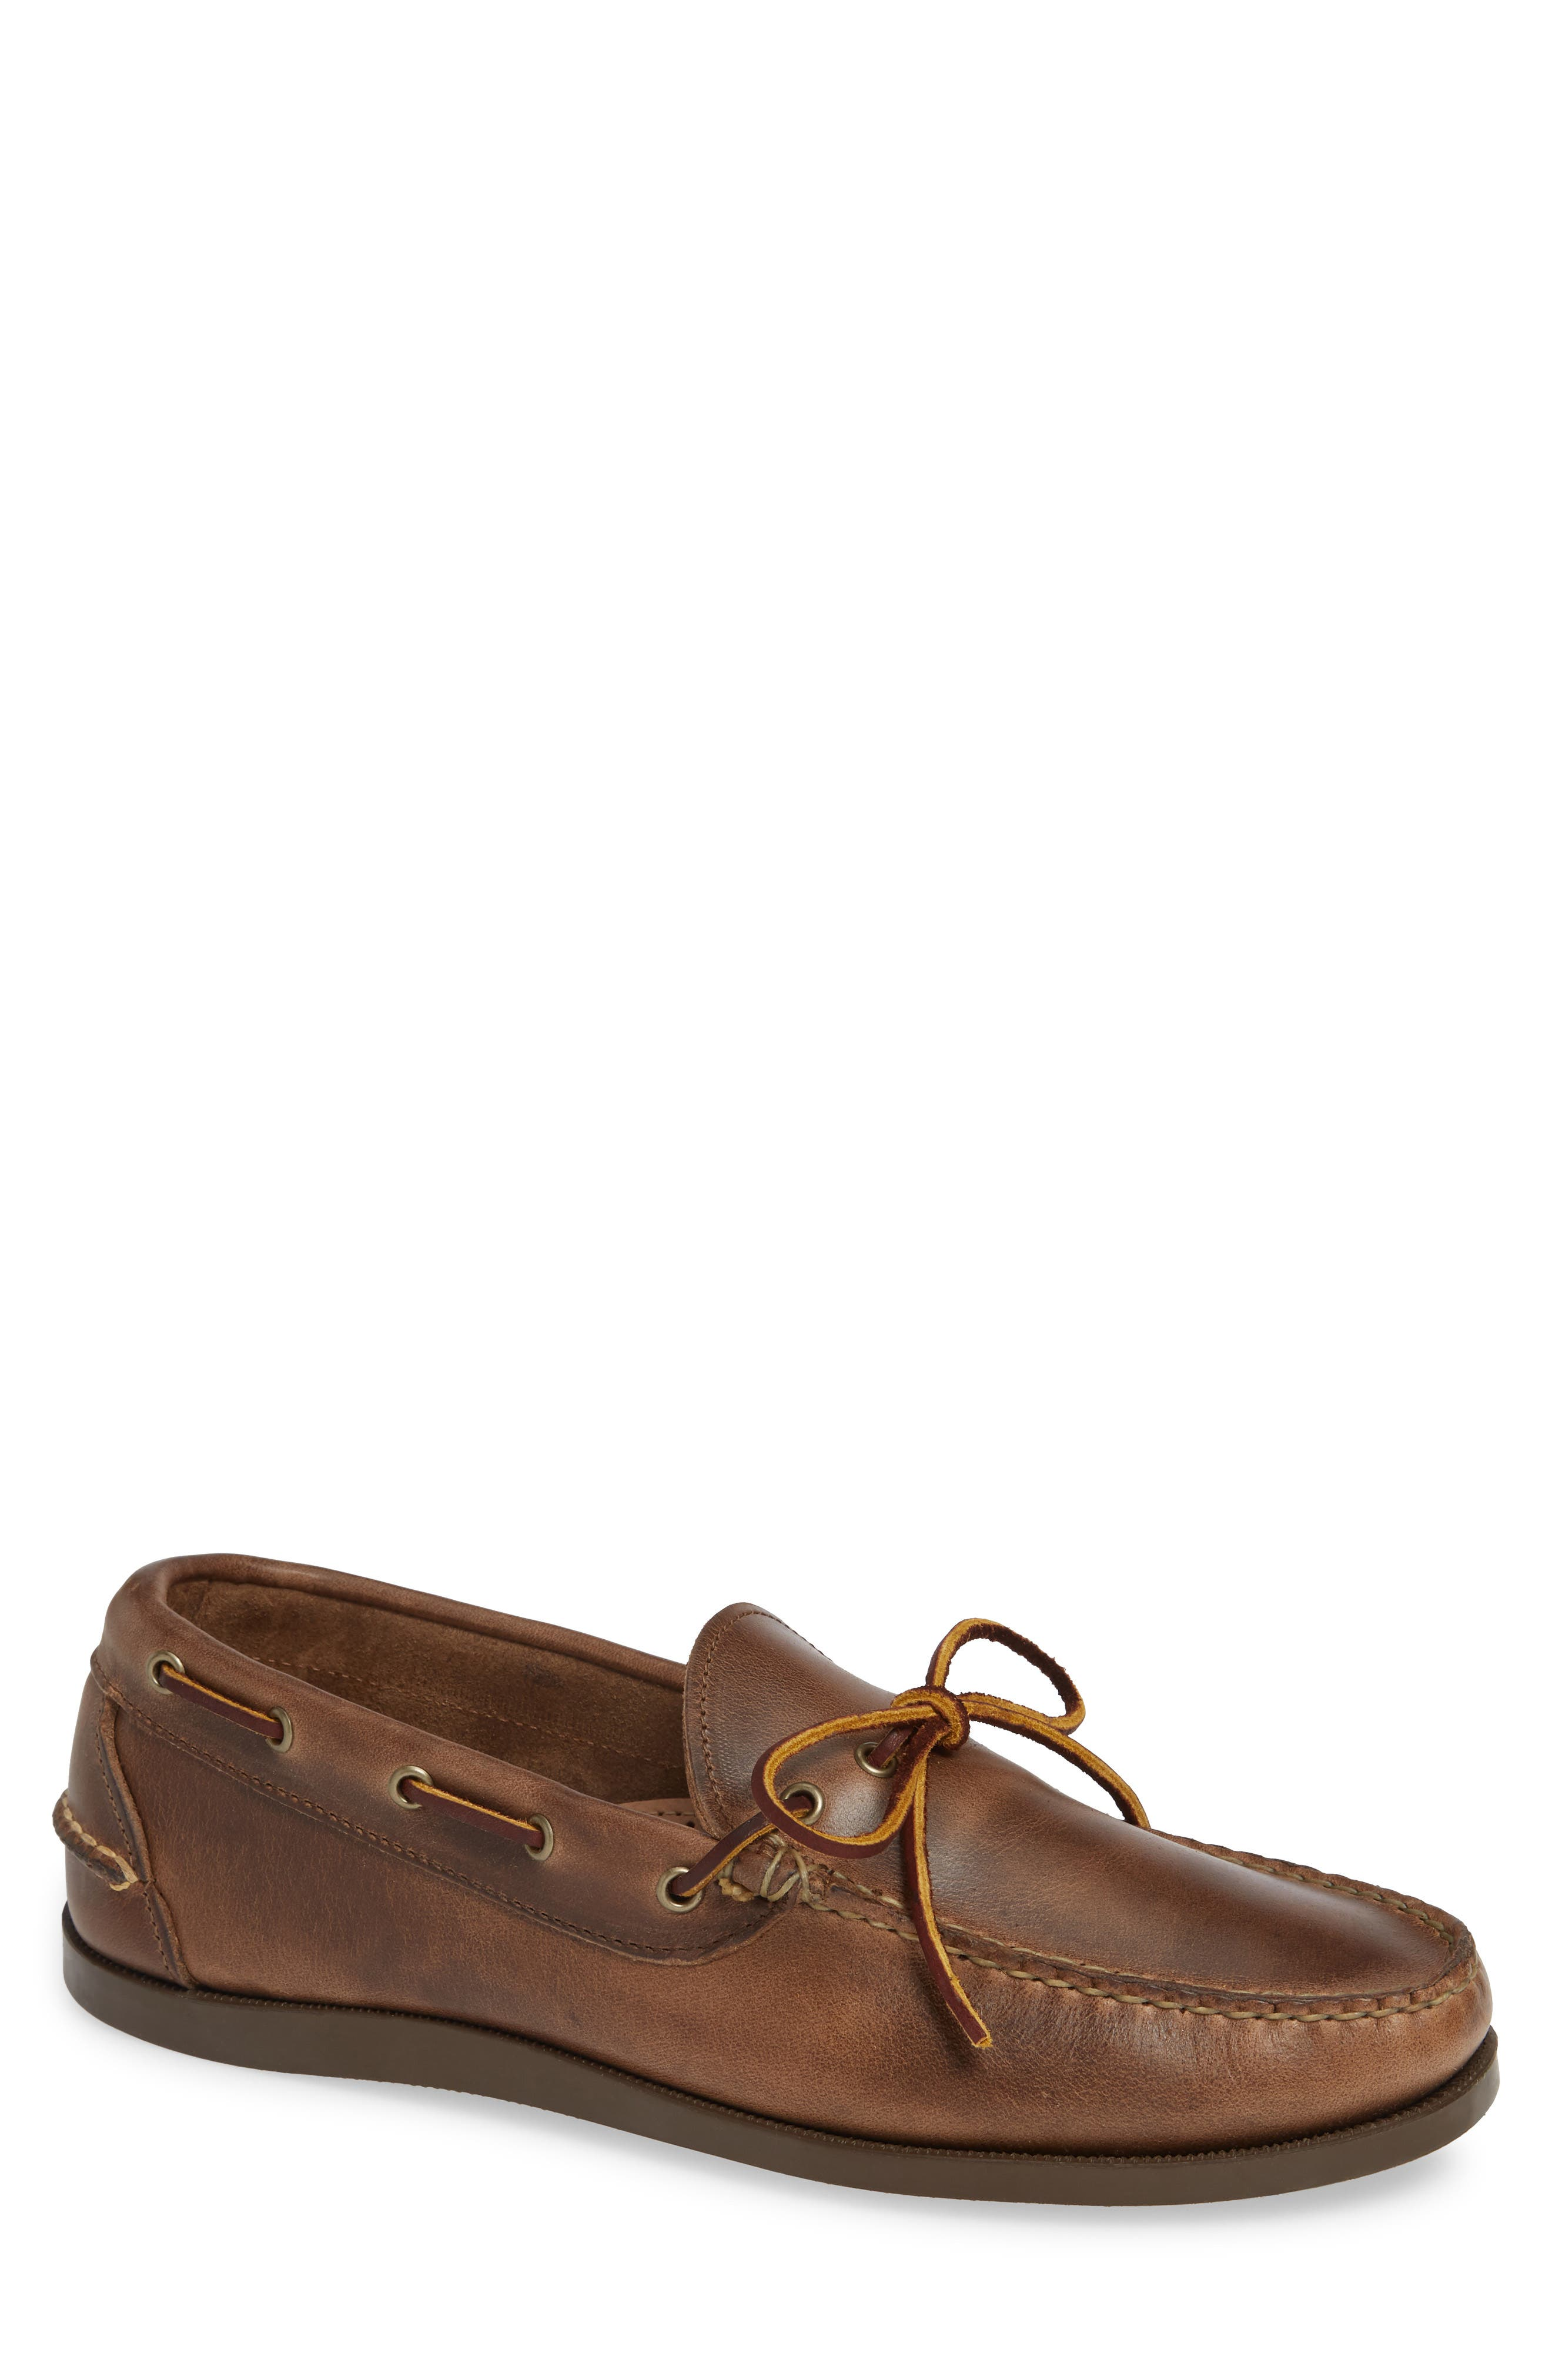 Camp Moccasin,                         Main,                         color, NATURAL LEATHER